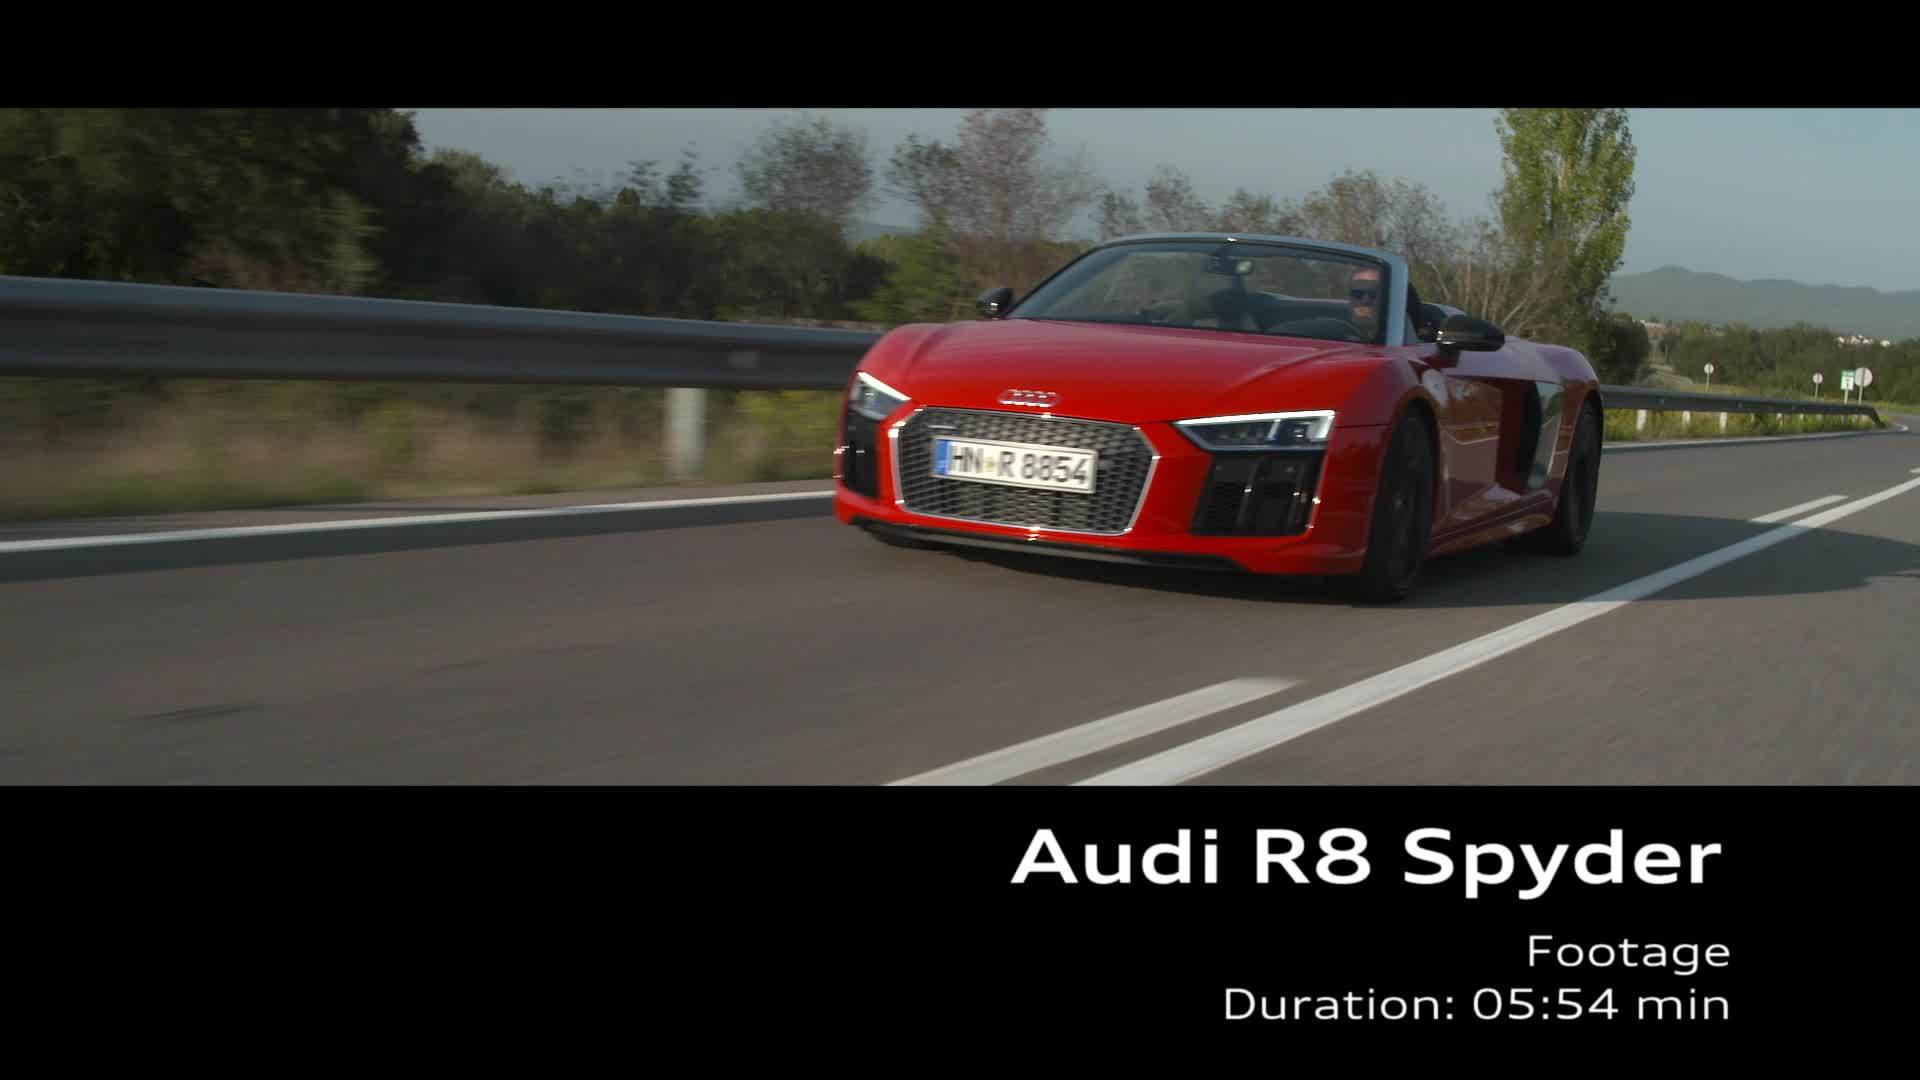 Audi R8 Spyder Footage red